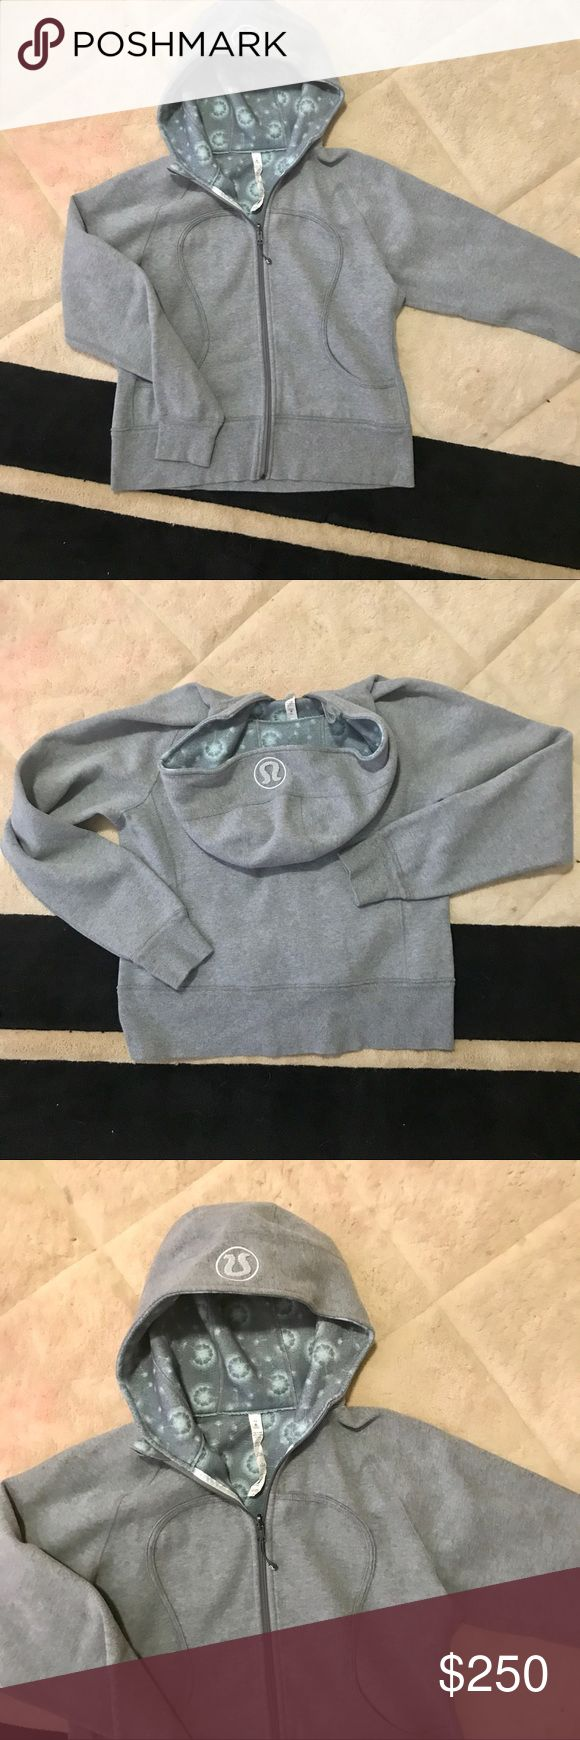 NEW LULULEMON GRAY ZIP UP HOODIE BRAND NEW WITH OUT TAGS- Never worn! Size 12- open to all offers , needs to go im cleaning out closet! Bundle for additional savings.. thanks ladies! This one is a steal! lululemon athletica Jackets & Coats